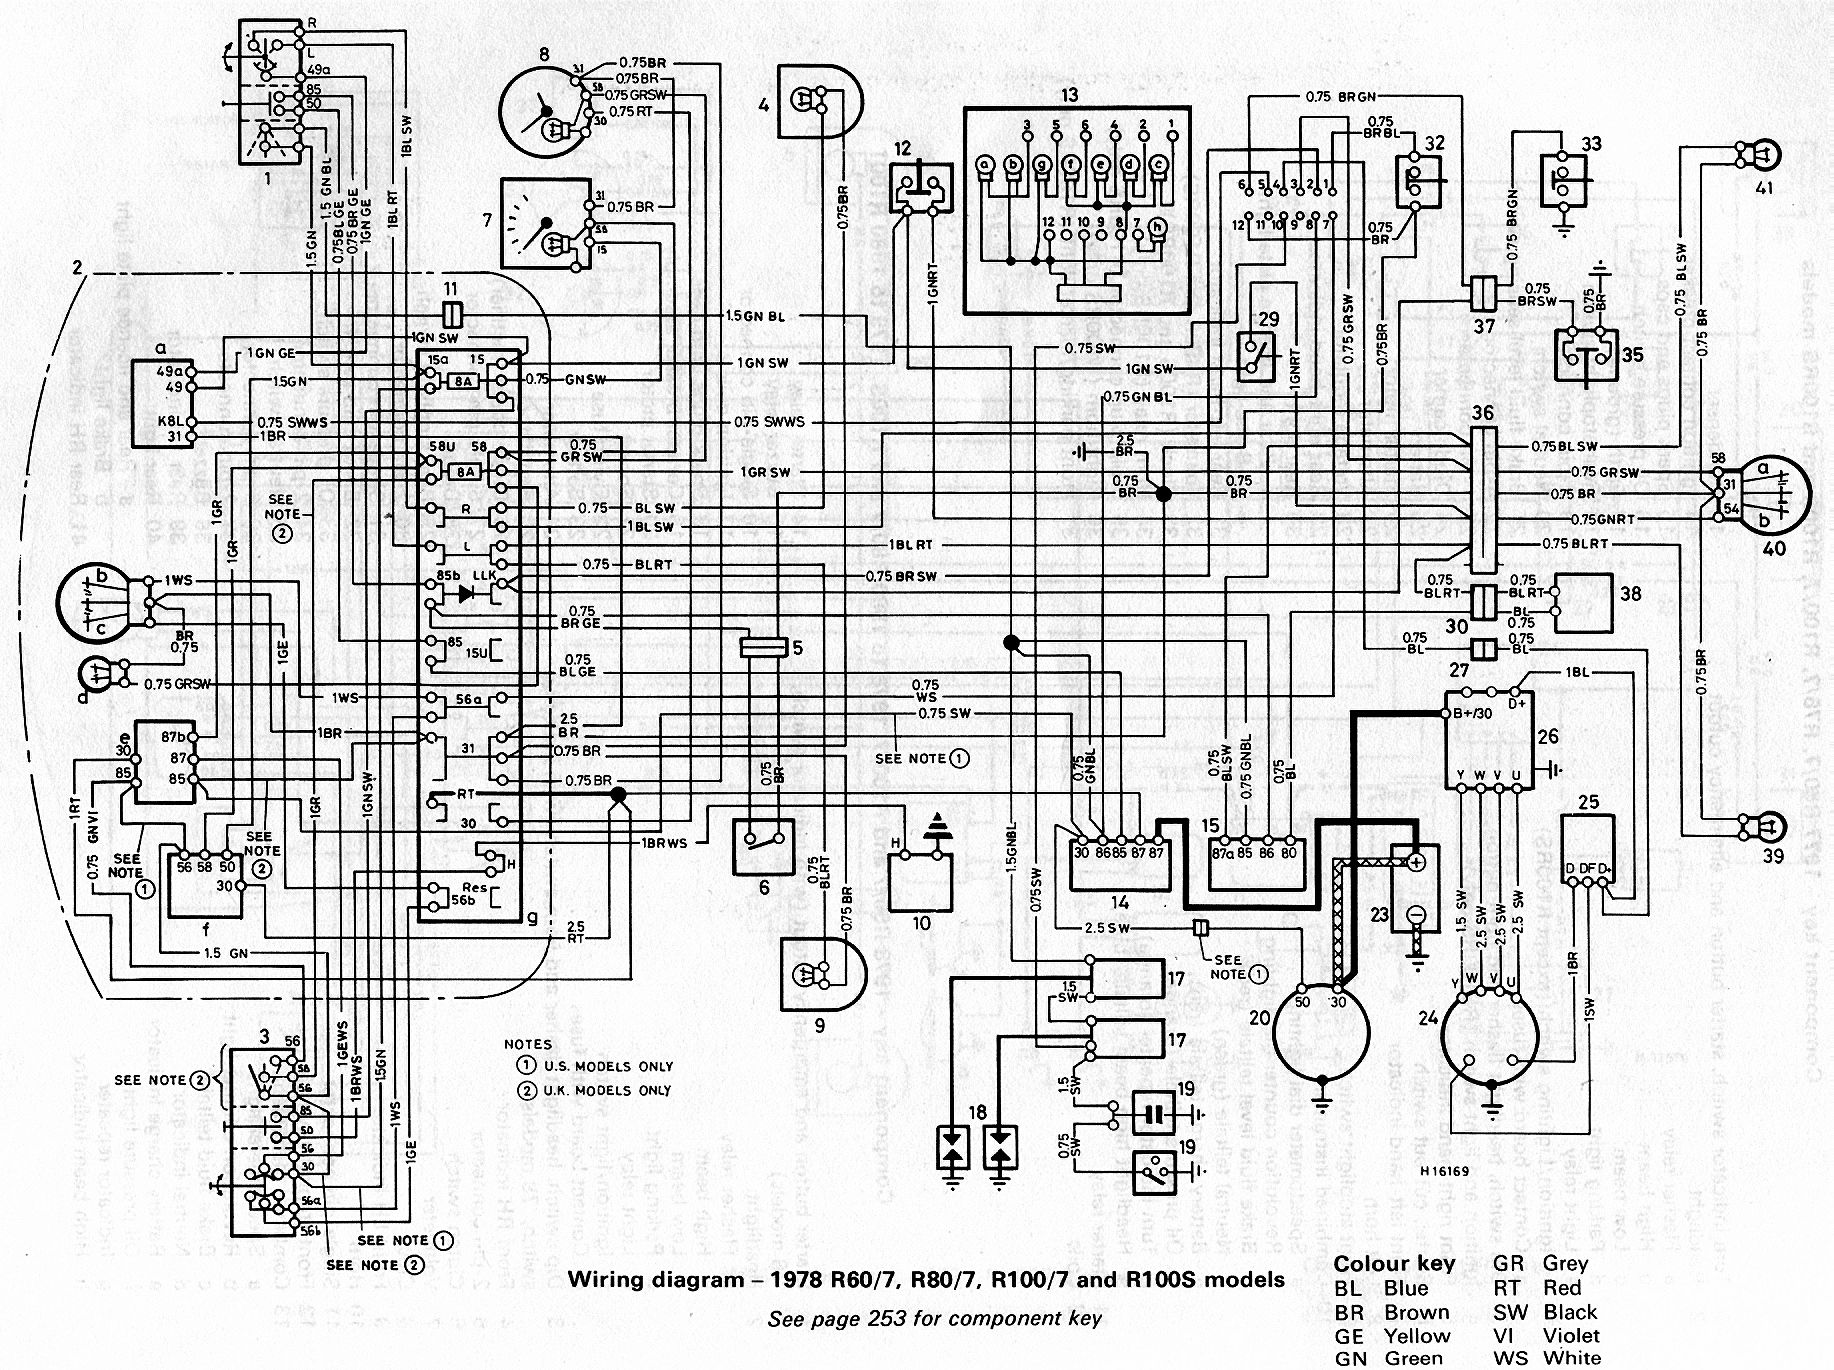 bmw 1984 r80 7 wiring diagram Chassis Wire Harness BMW R